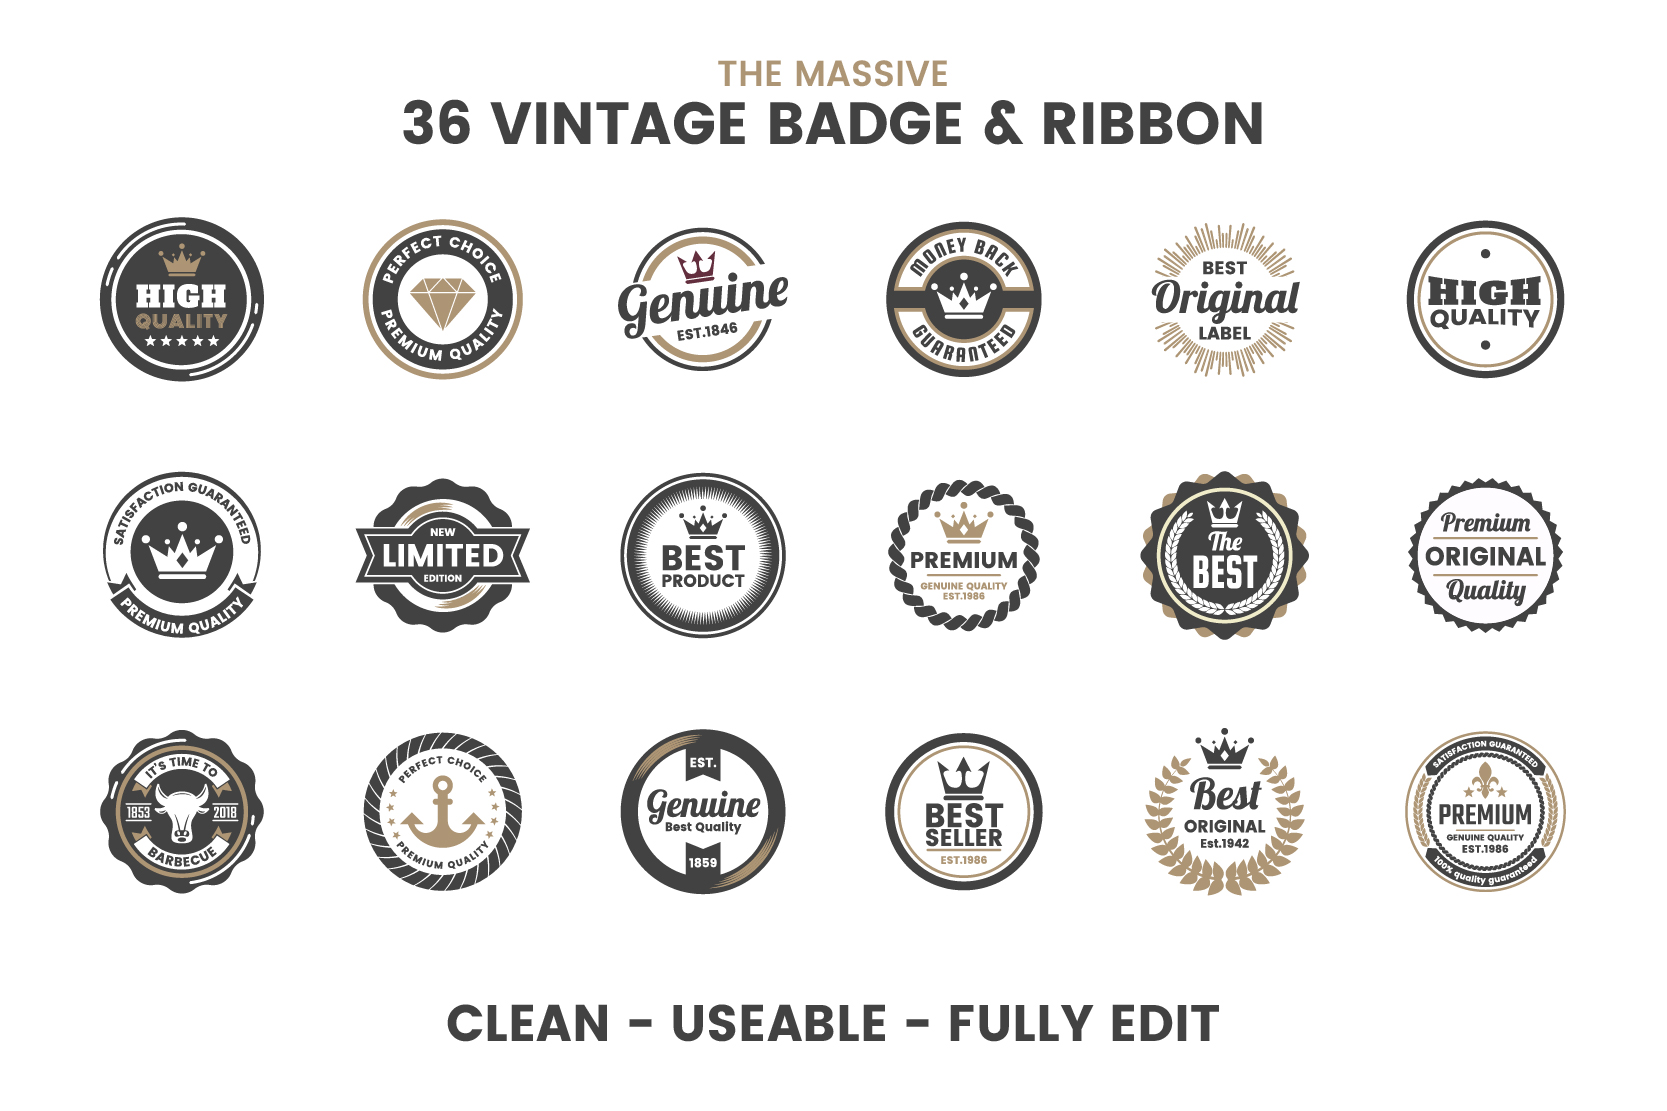 36 VINTAGE BADGE & RIBBON Vol.4 example image 7